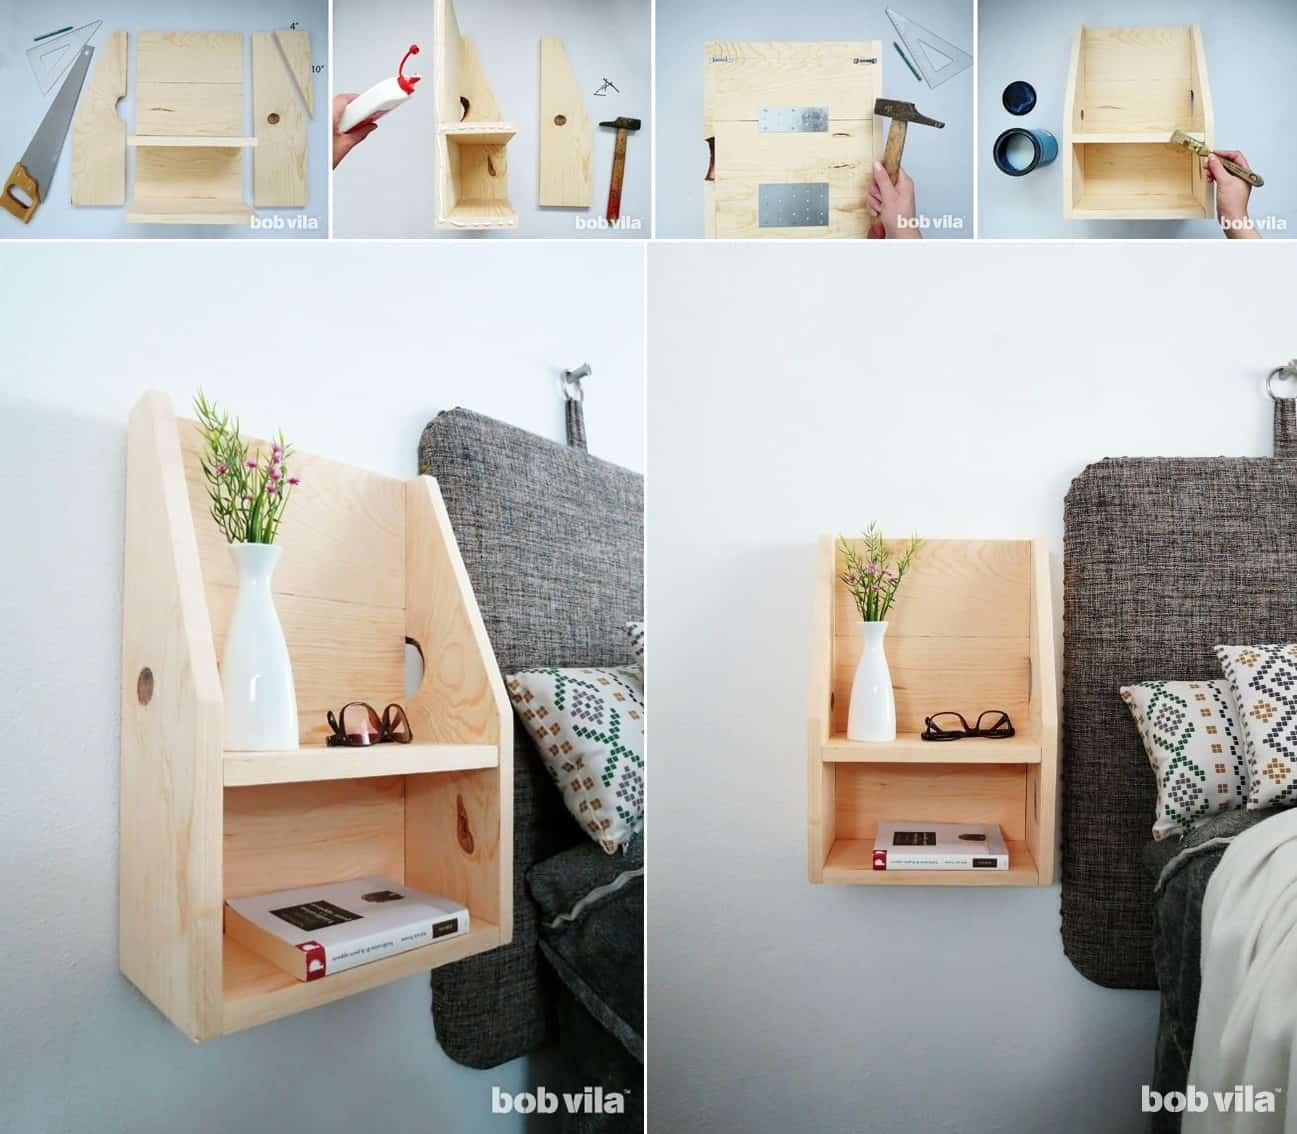 Nightstand Ideas Perfect For A Small Bedroom Remodel Or Move